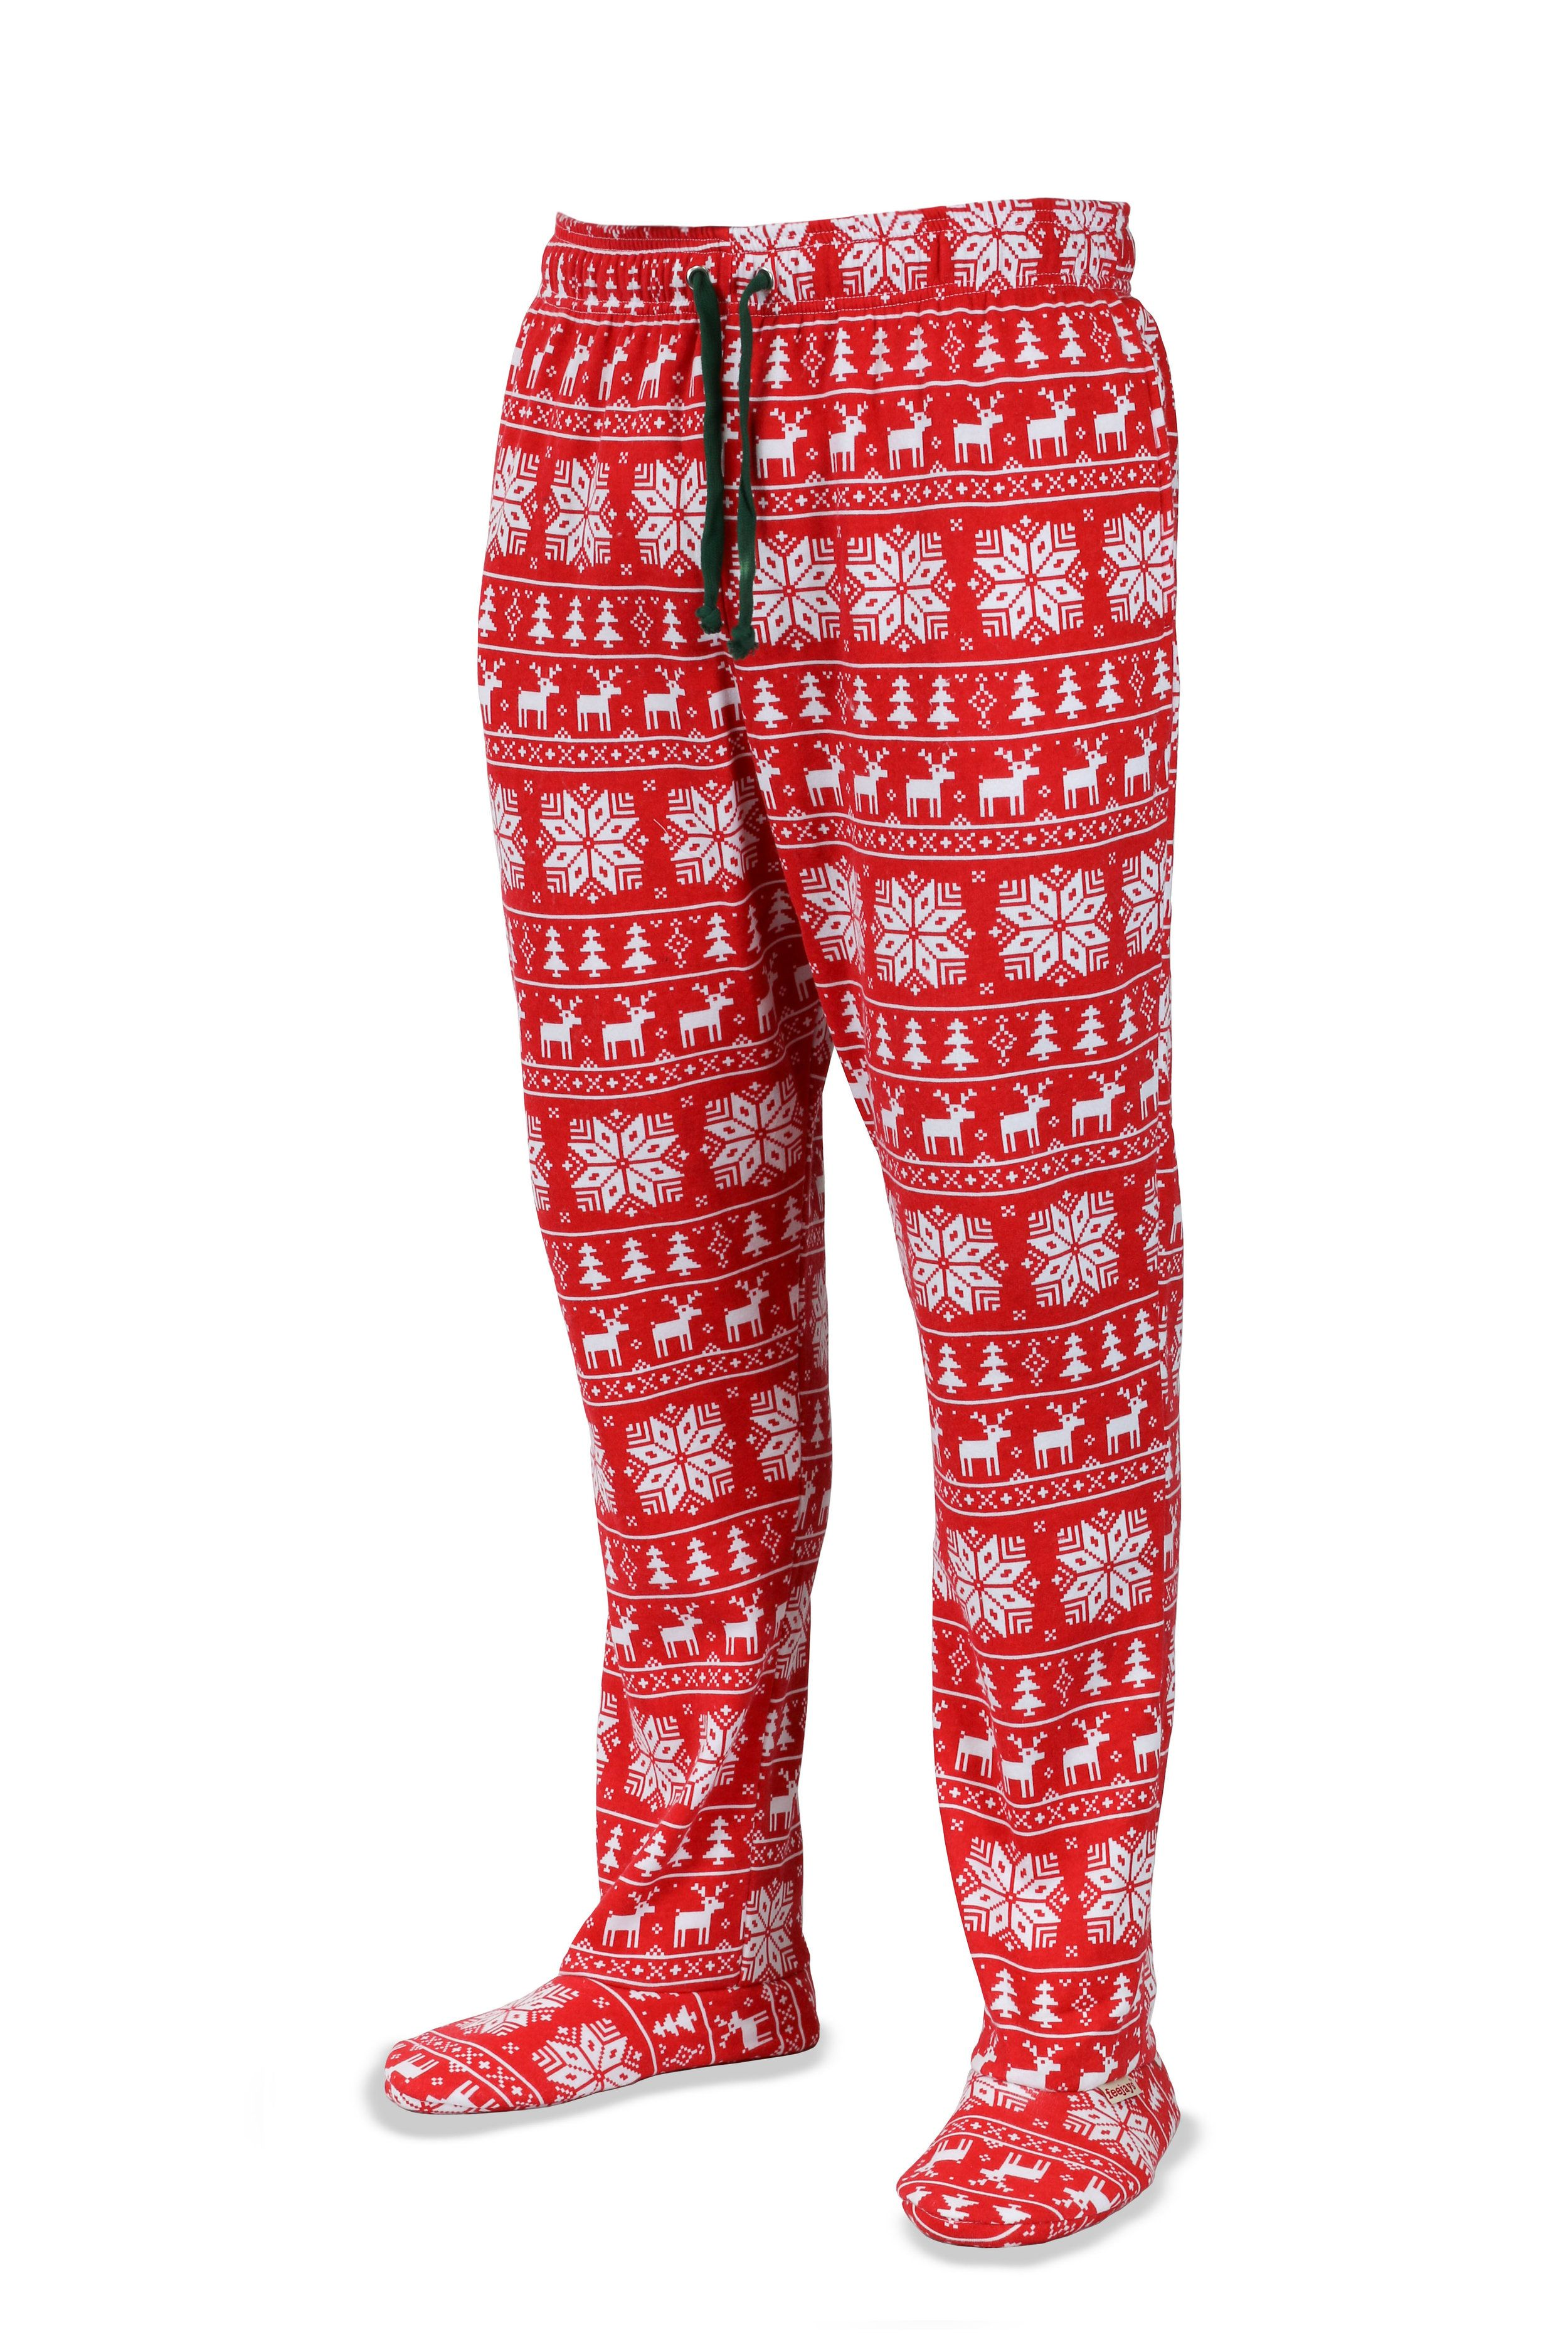 Holiday Feejays Sweatpants With Built In Socks For People Cold Feet They Come A Variety Of Patterns And Colors